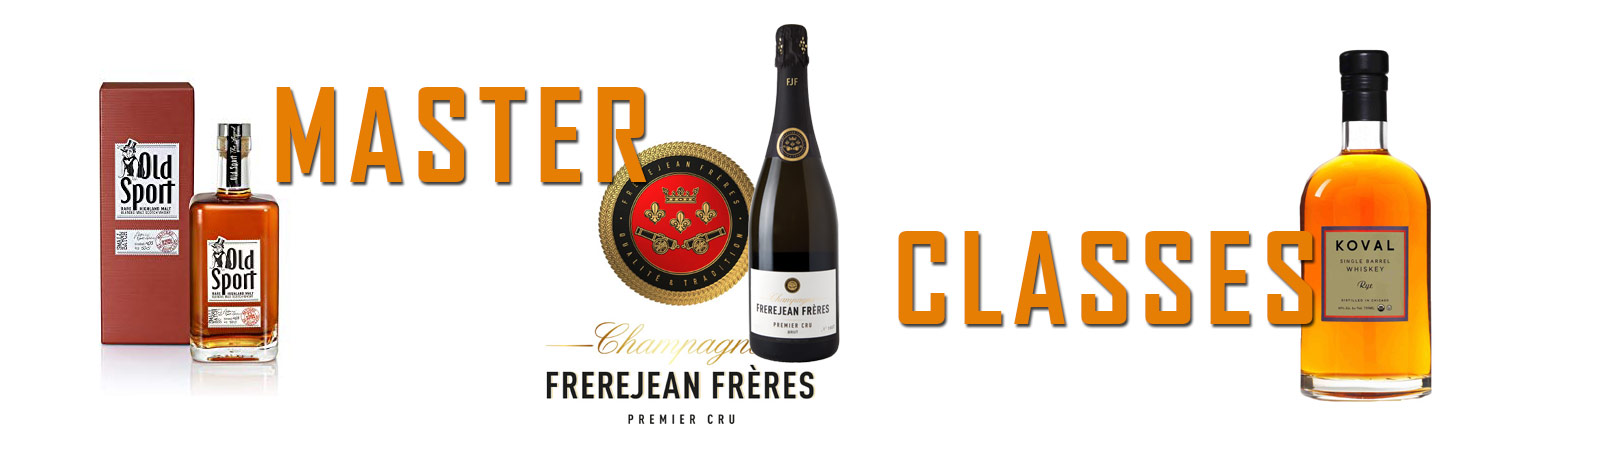 Masterclass Wine, Beer and Spirits Banner